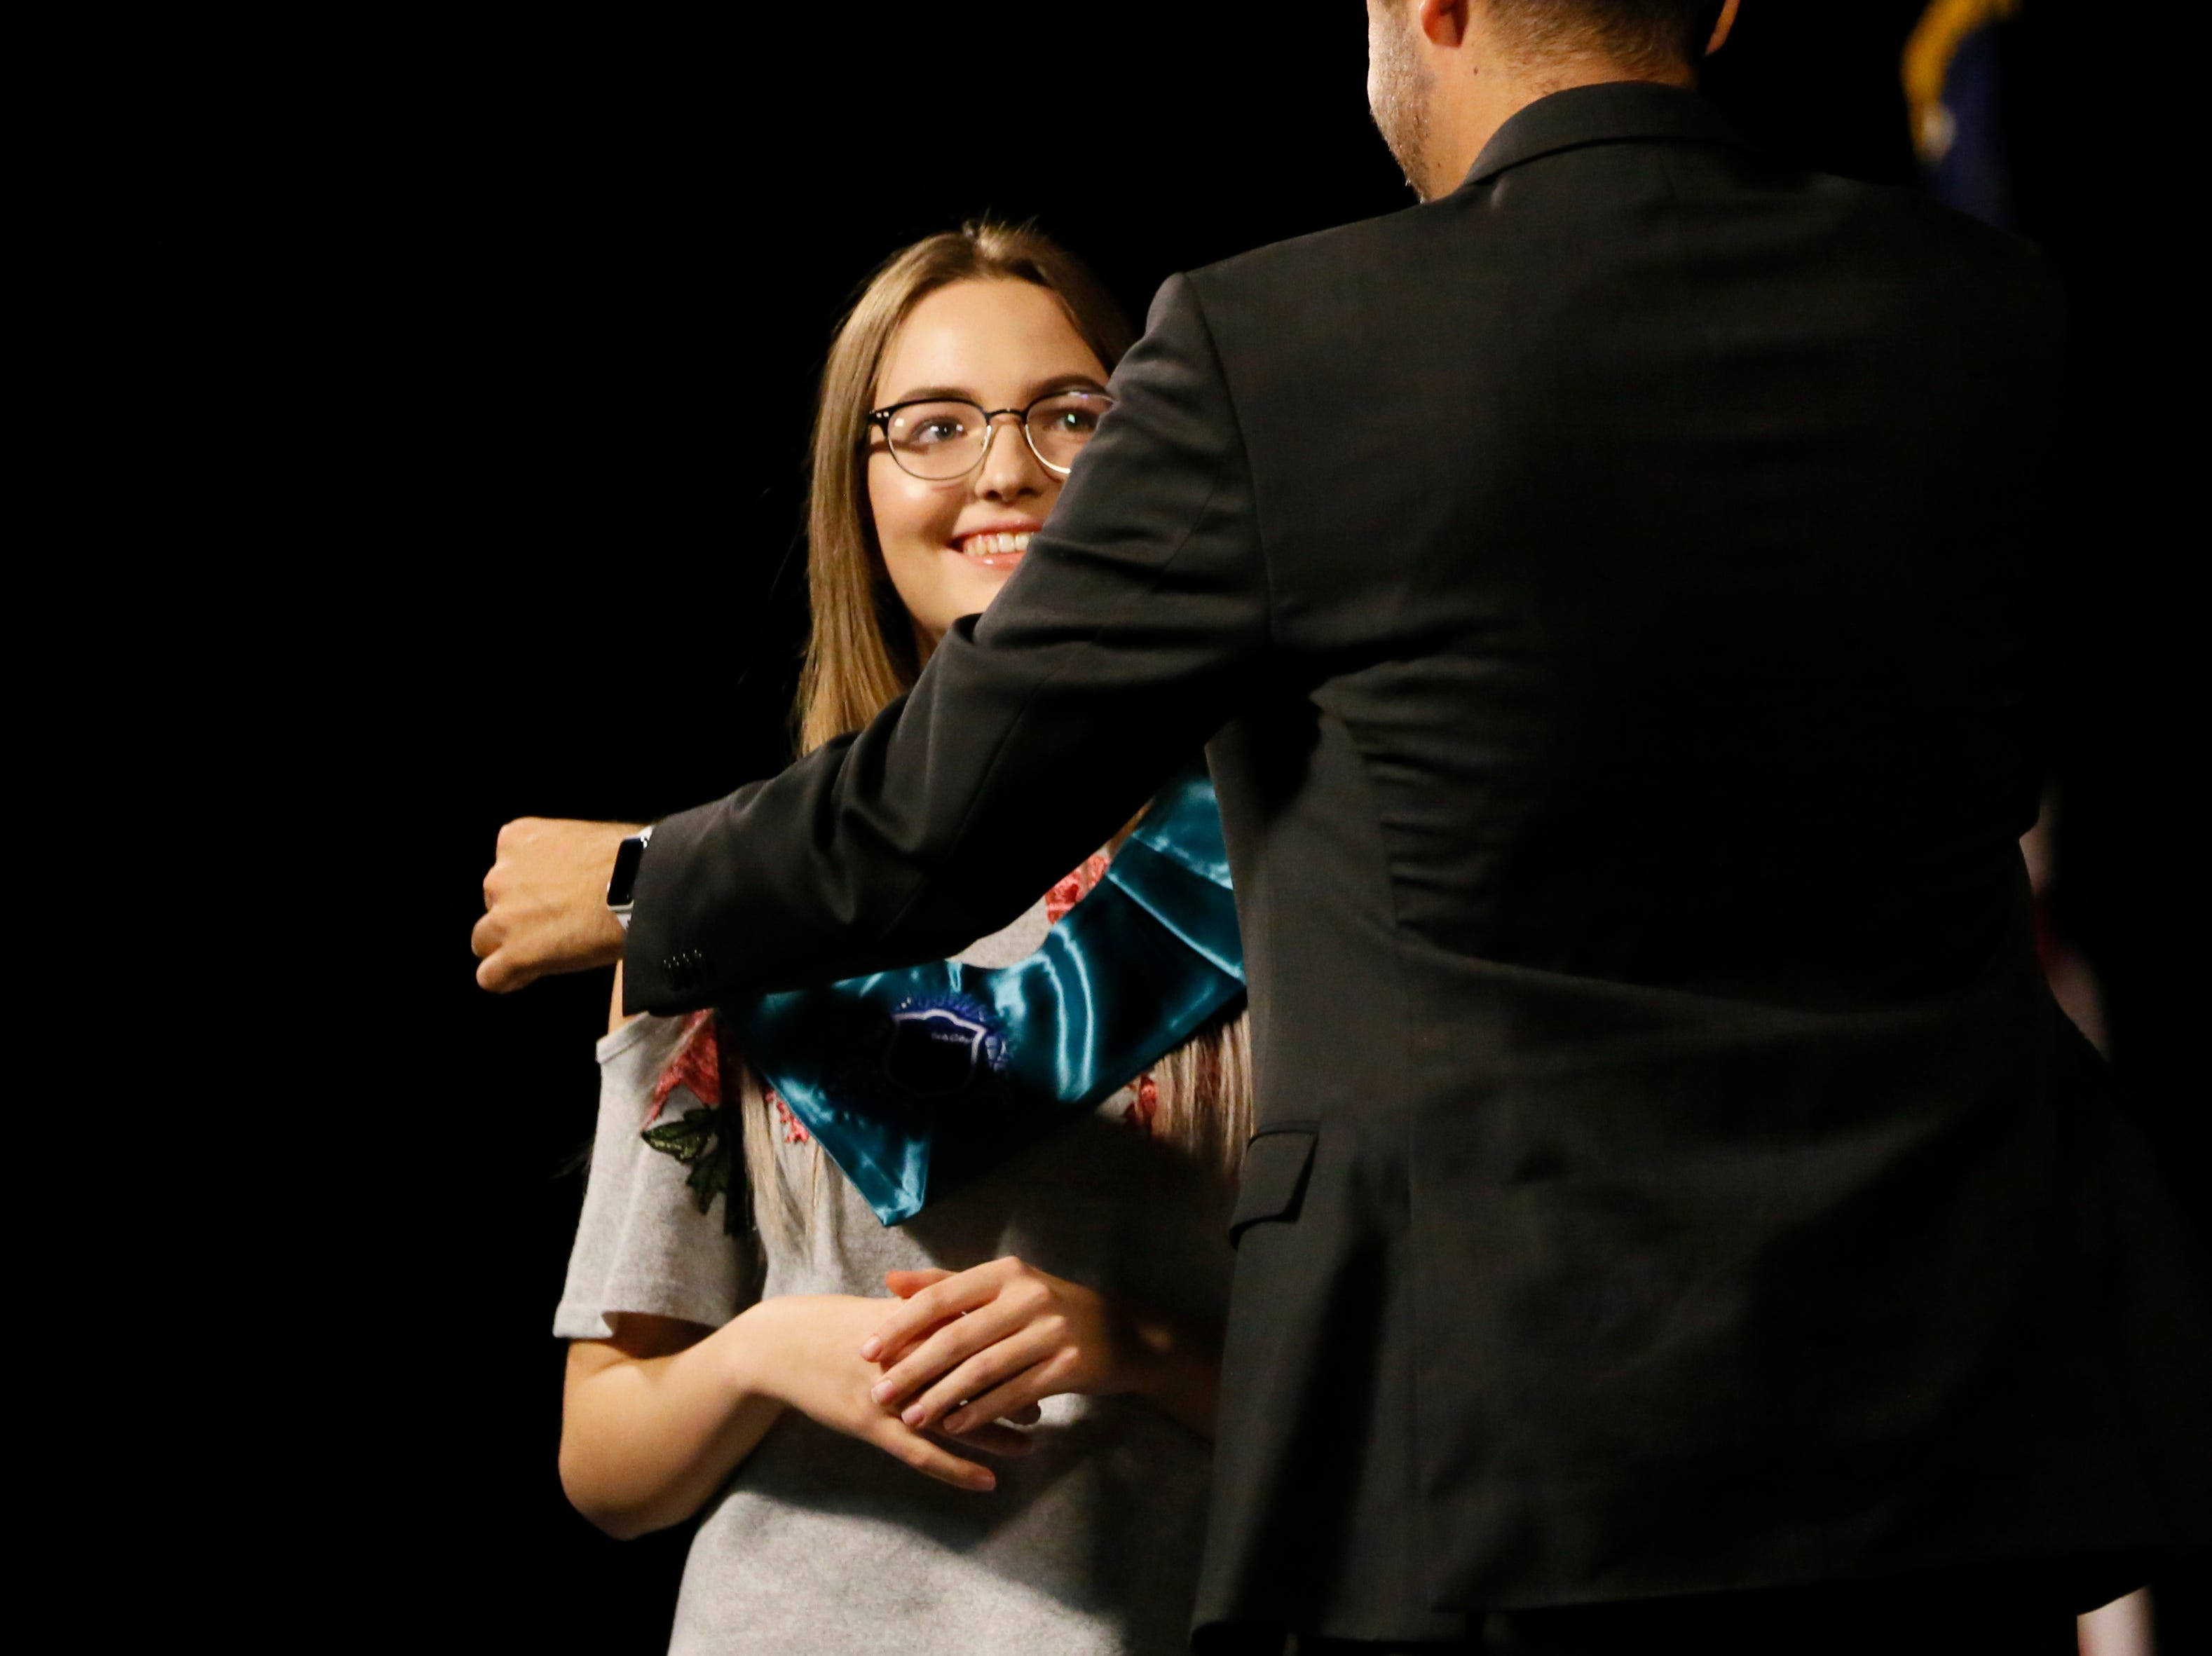 Mission Early College High School Principal Benjamin Ortega presents Jacqueline Turmarin with her stole during their stoling ceremony Tuesday, May 7, at EPCC Administrative Service Center in El Paso.